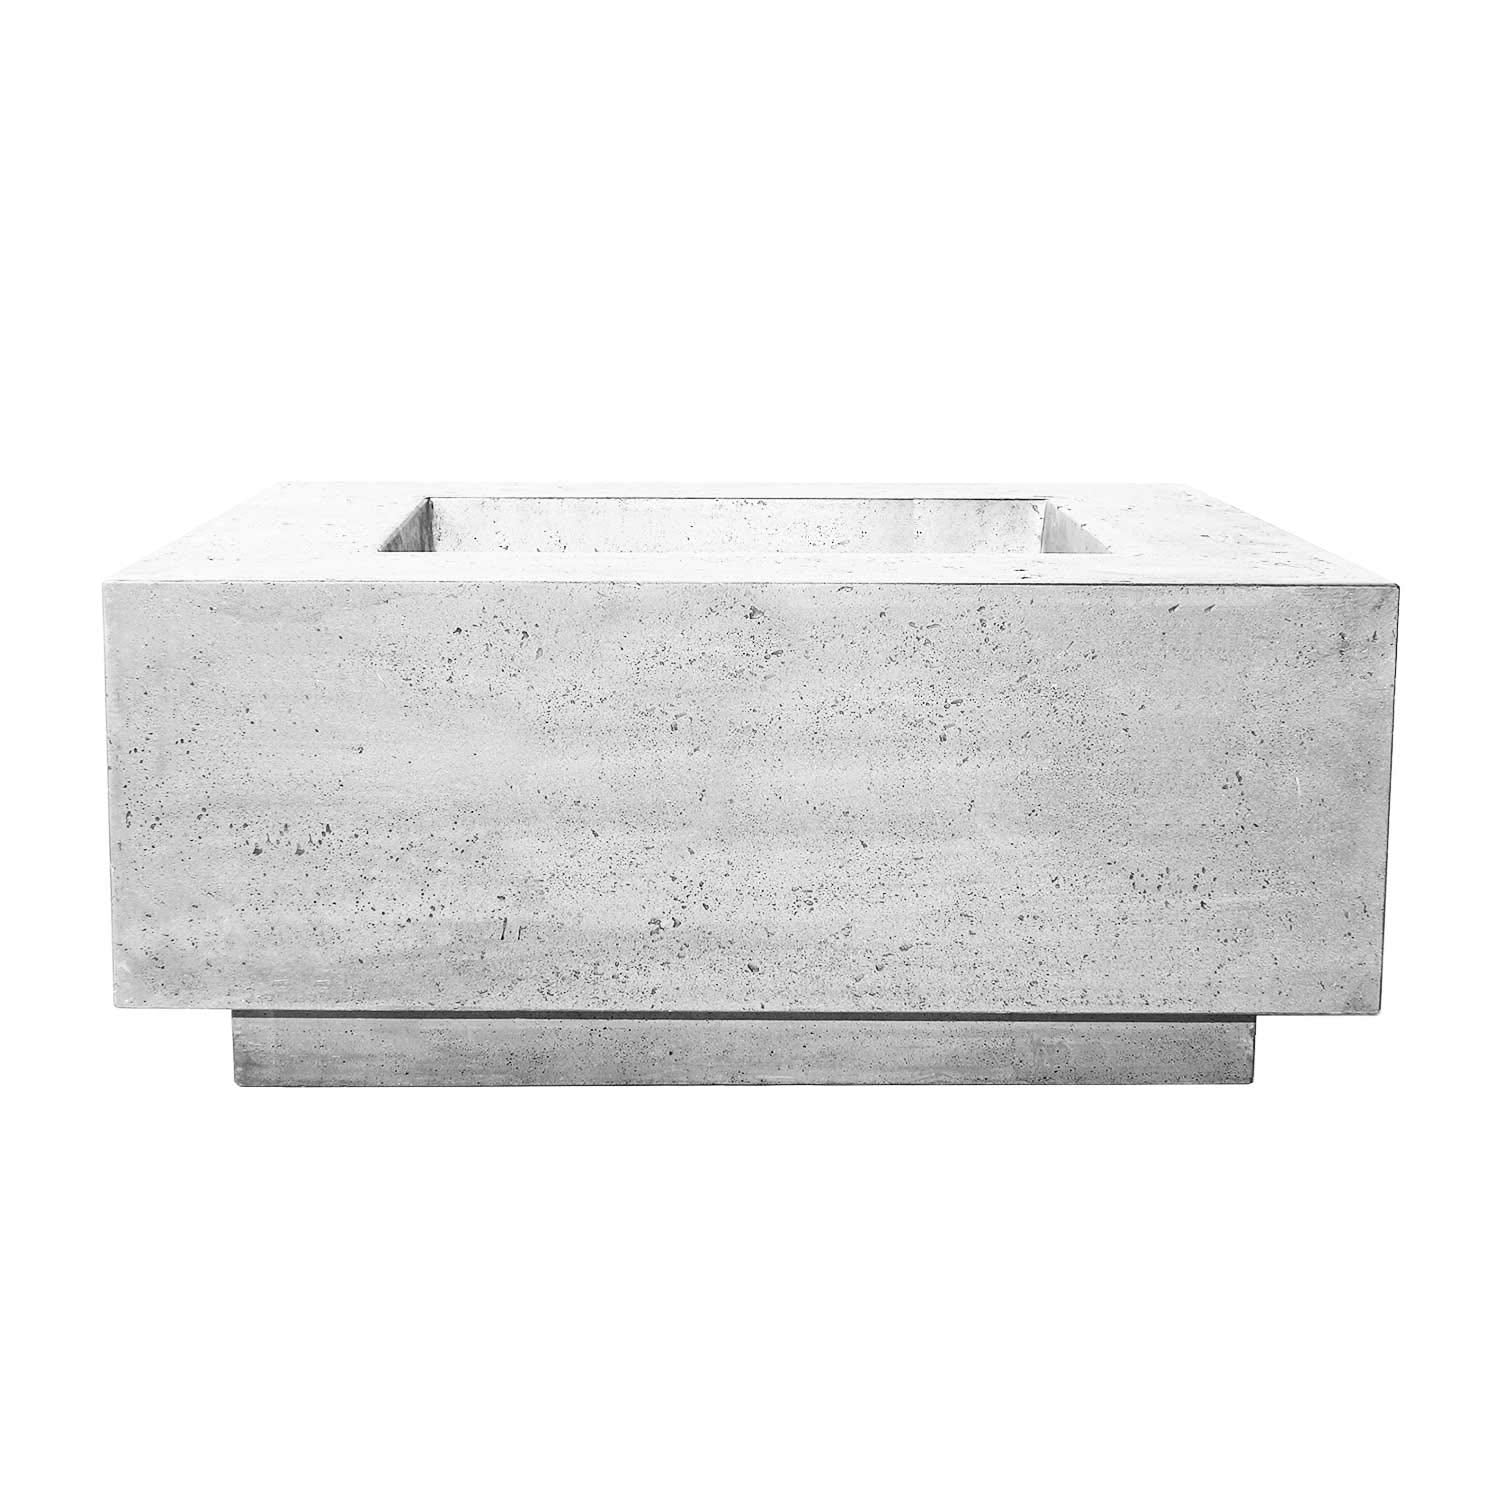 Prism Hardscapes Tavola 42 Electronic Ignition Concrete Gas Fire Pit (PH-427-5NG-WBECS), Natural Gas, Ultra White, 42x42-Inch